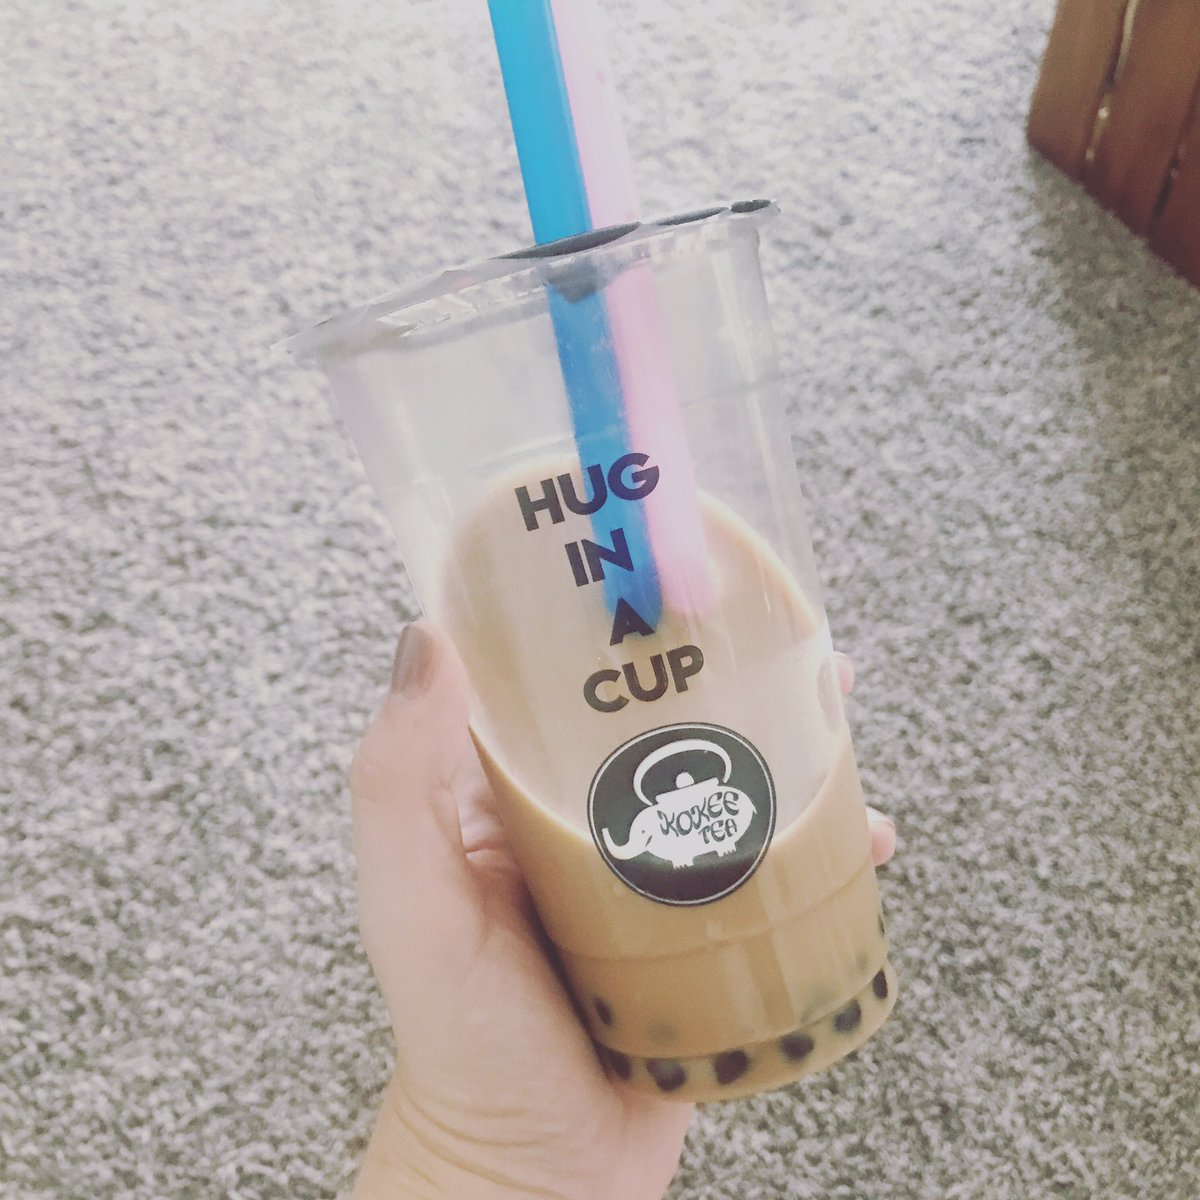 I am craving bubble tea soo bad right now!! I love it but there aren't many places super close to me that serve it. I need to figure out how to make it myself! #bubbletea #lovebubbletea